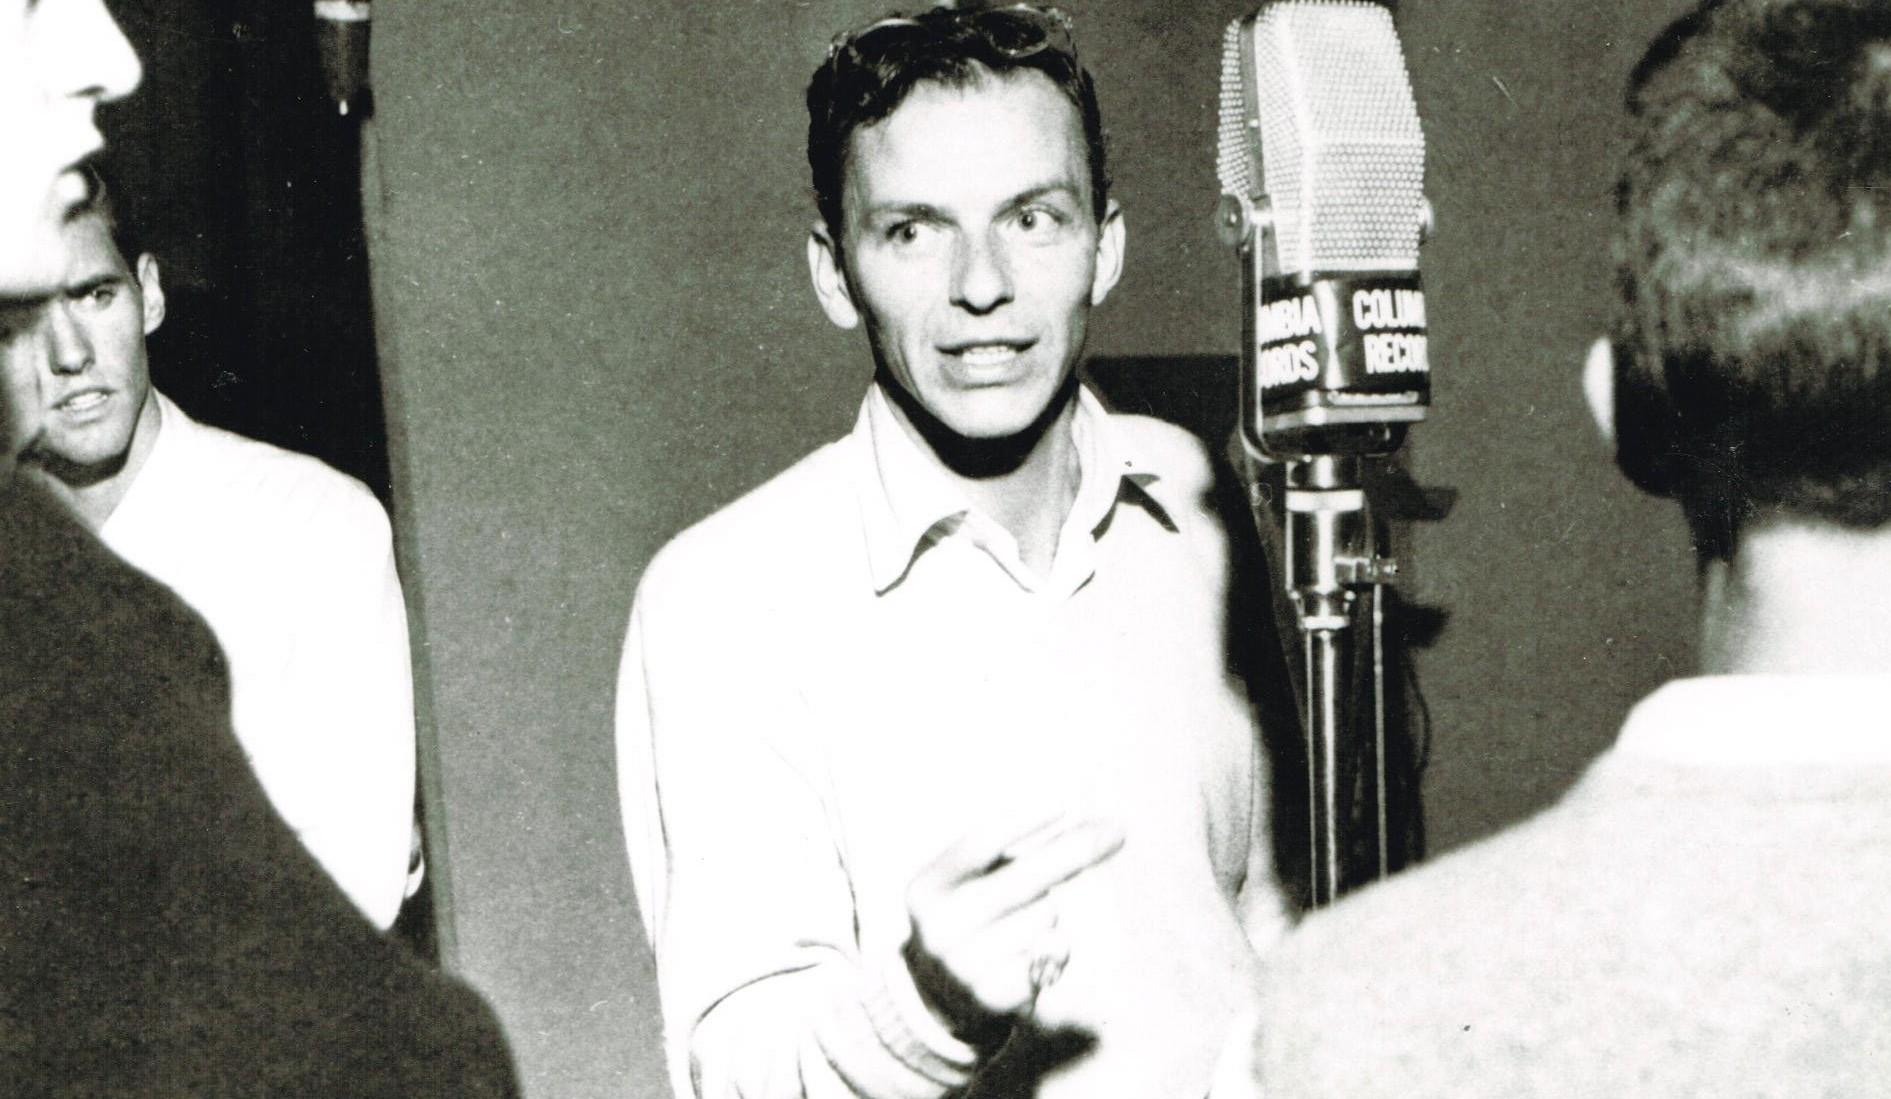 Jeff Simon takes a look at four Frank Sinatra discs in this week's Listening Post.